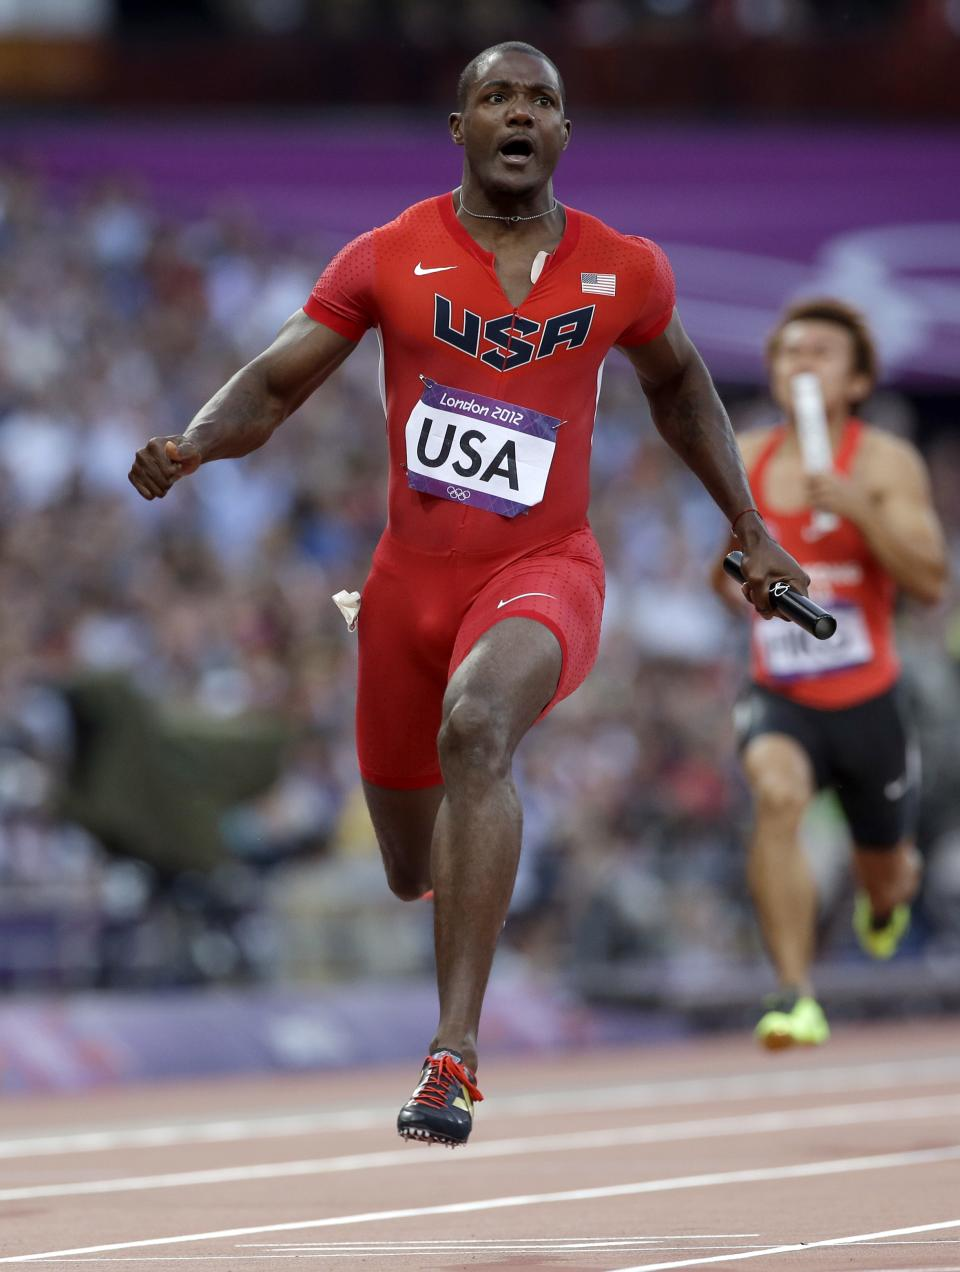 United States' Justin Gatlin competes in a men's 4 x100-meters relay heat during the athletics in the Olympic Stadium at the 2012 Summer Olympics, London, Friday, Aug. 10, 2012. (AP Photo/Anja Niedringhaus)